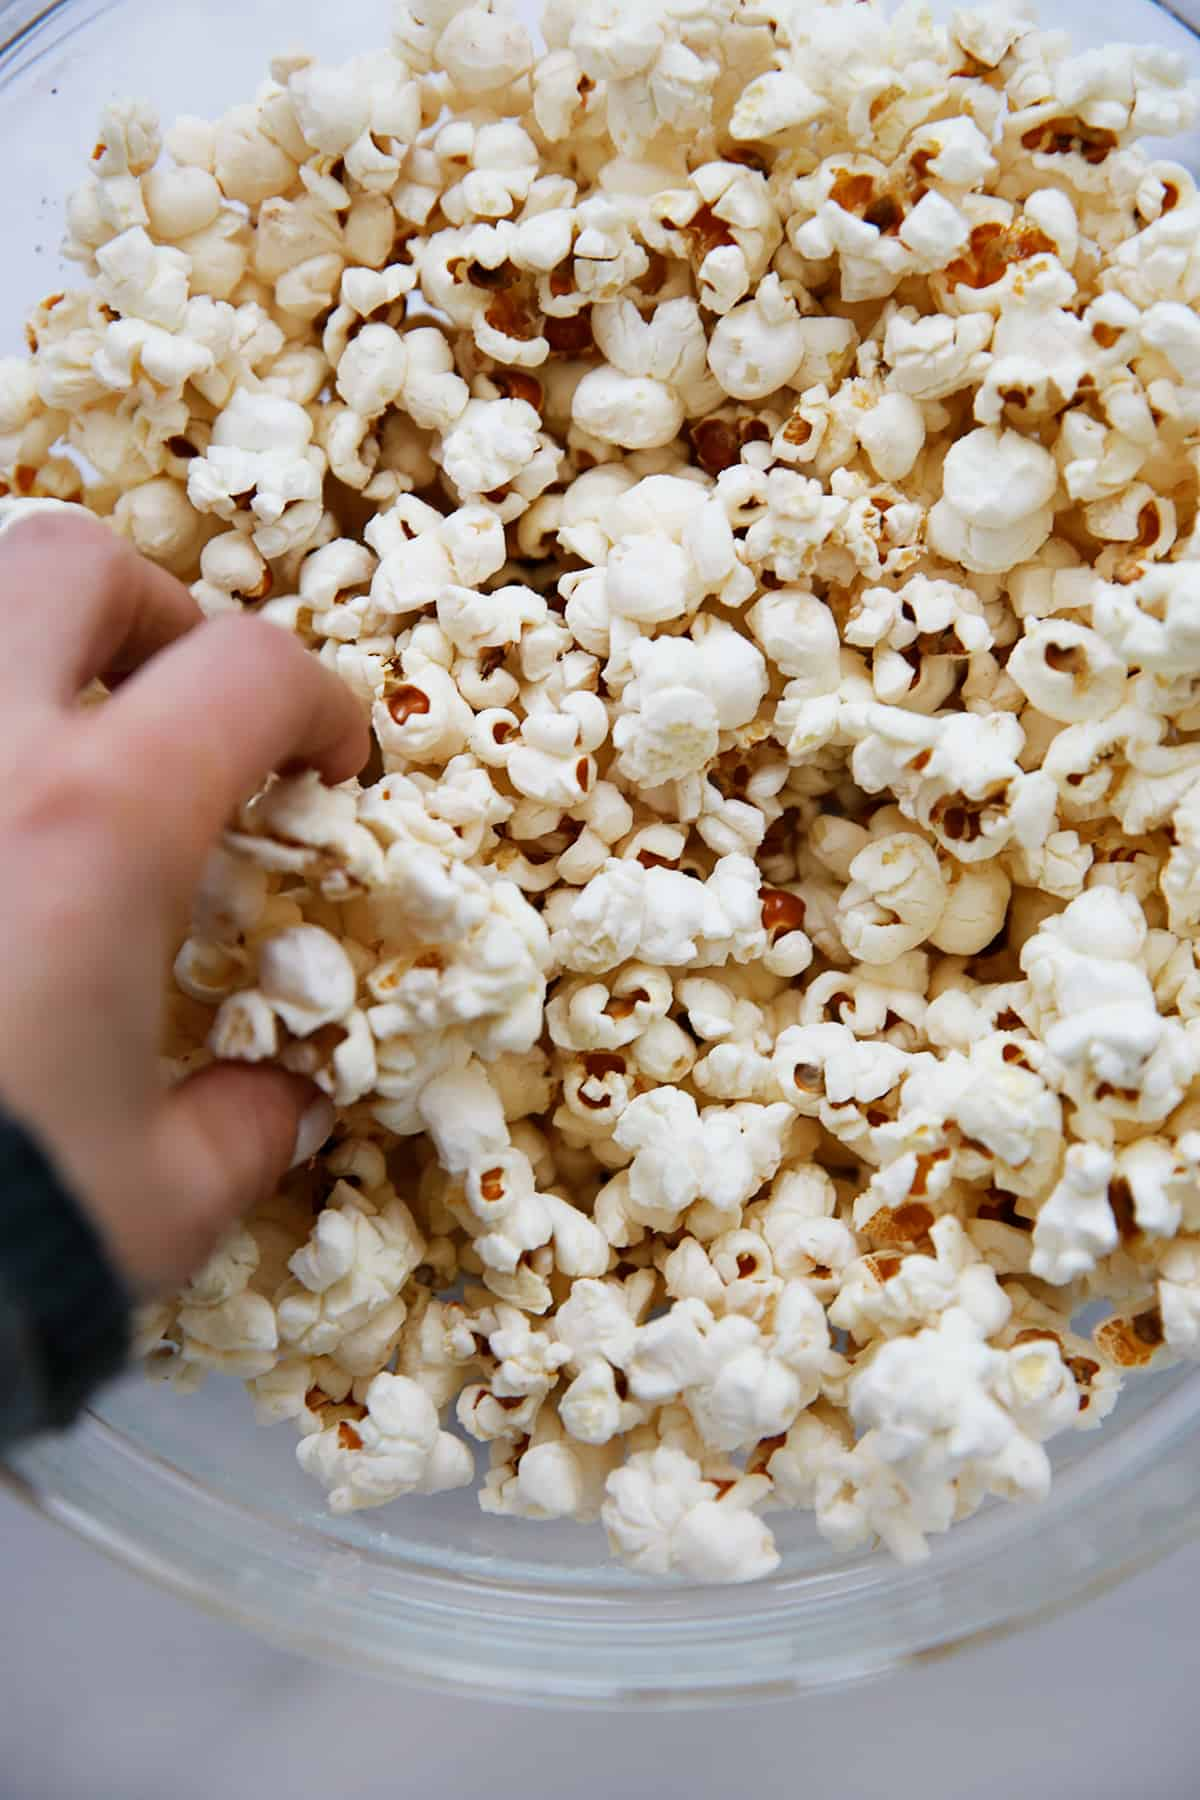 How to make popcorn from corn